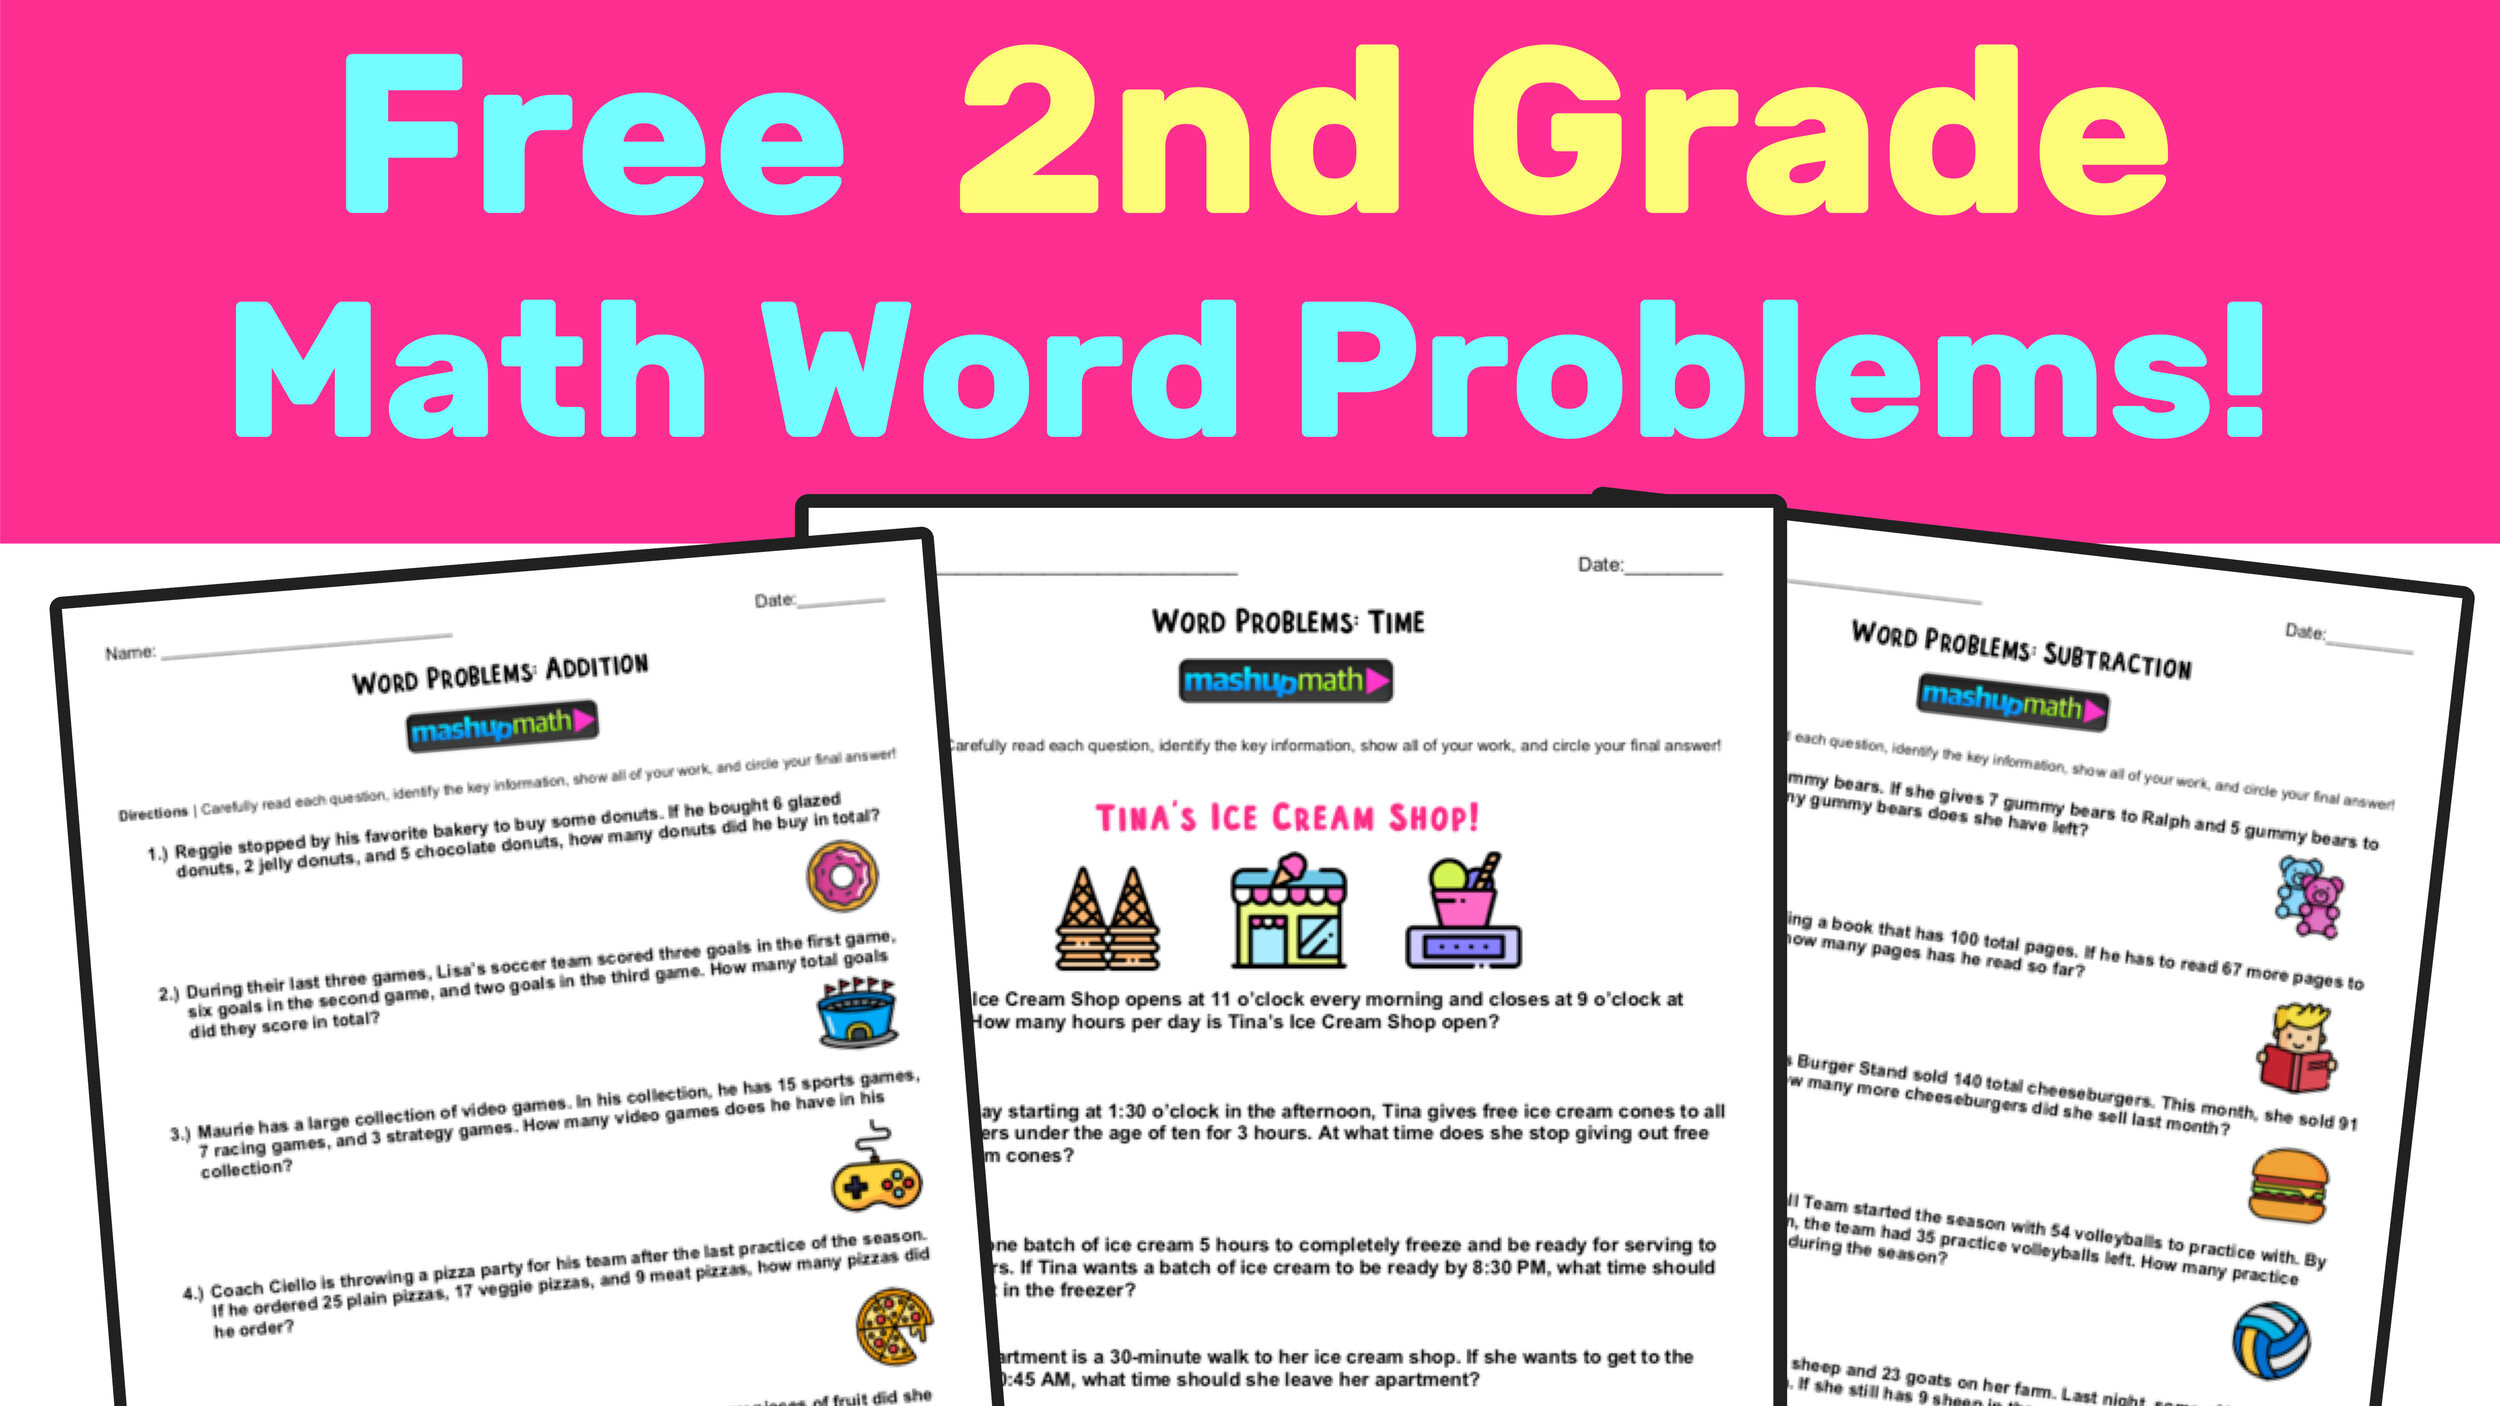 2nd Grade Math Worksheets Measurement Free 2nd Grade Math Word Problem Worksheets — Mashup Math